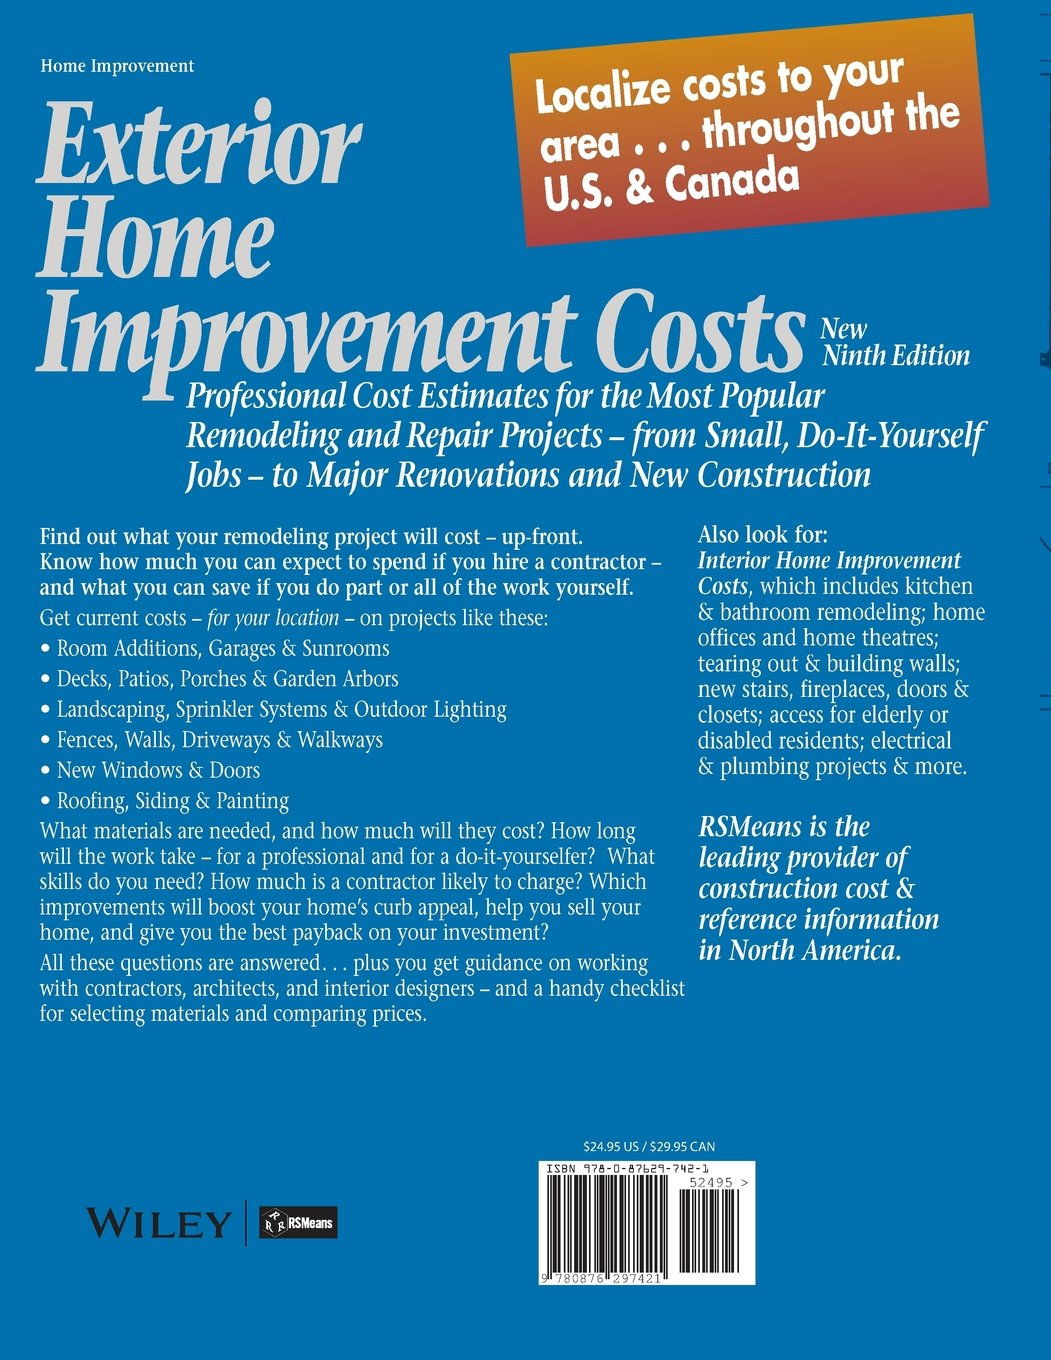 Estimating home improvement projects